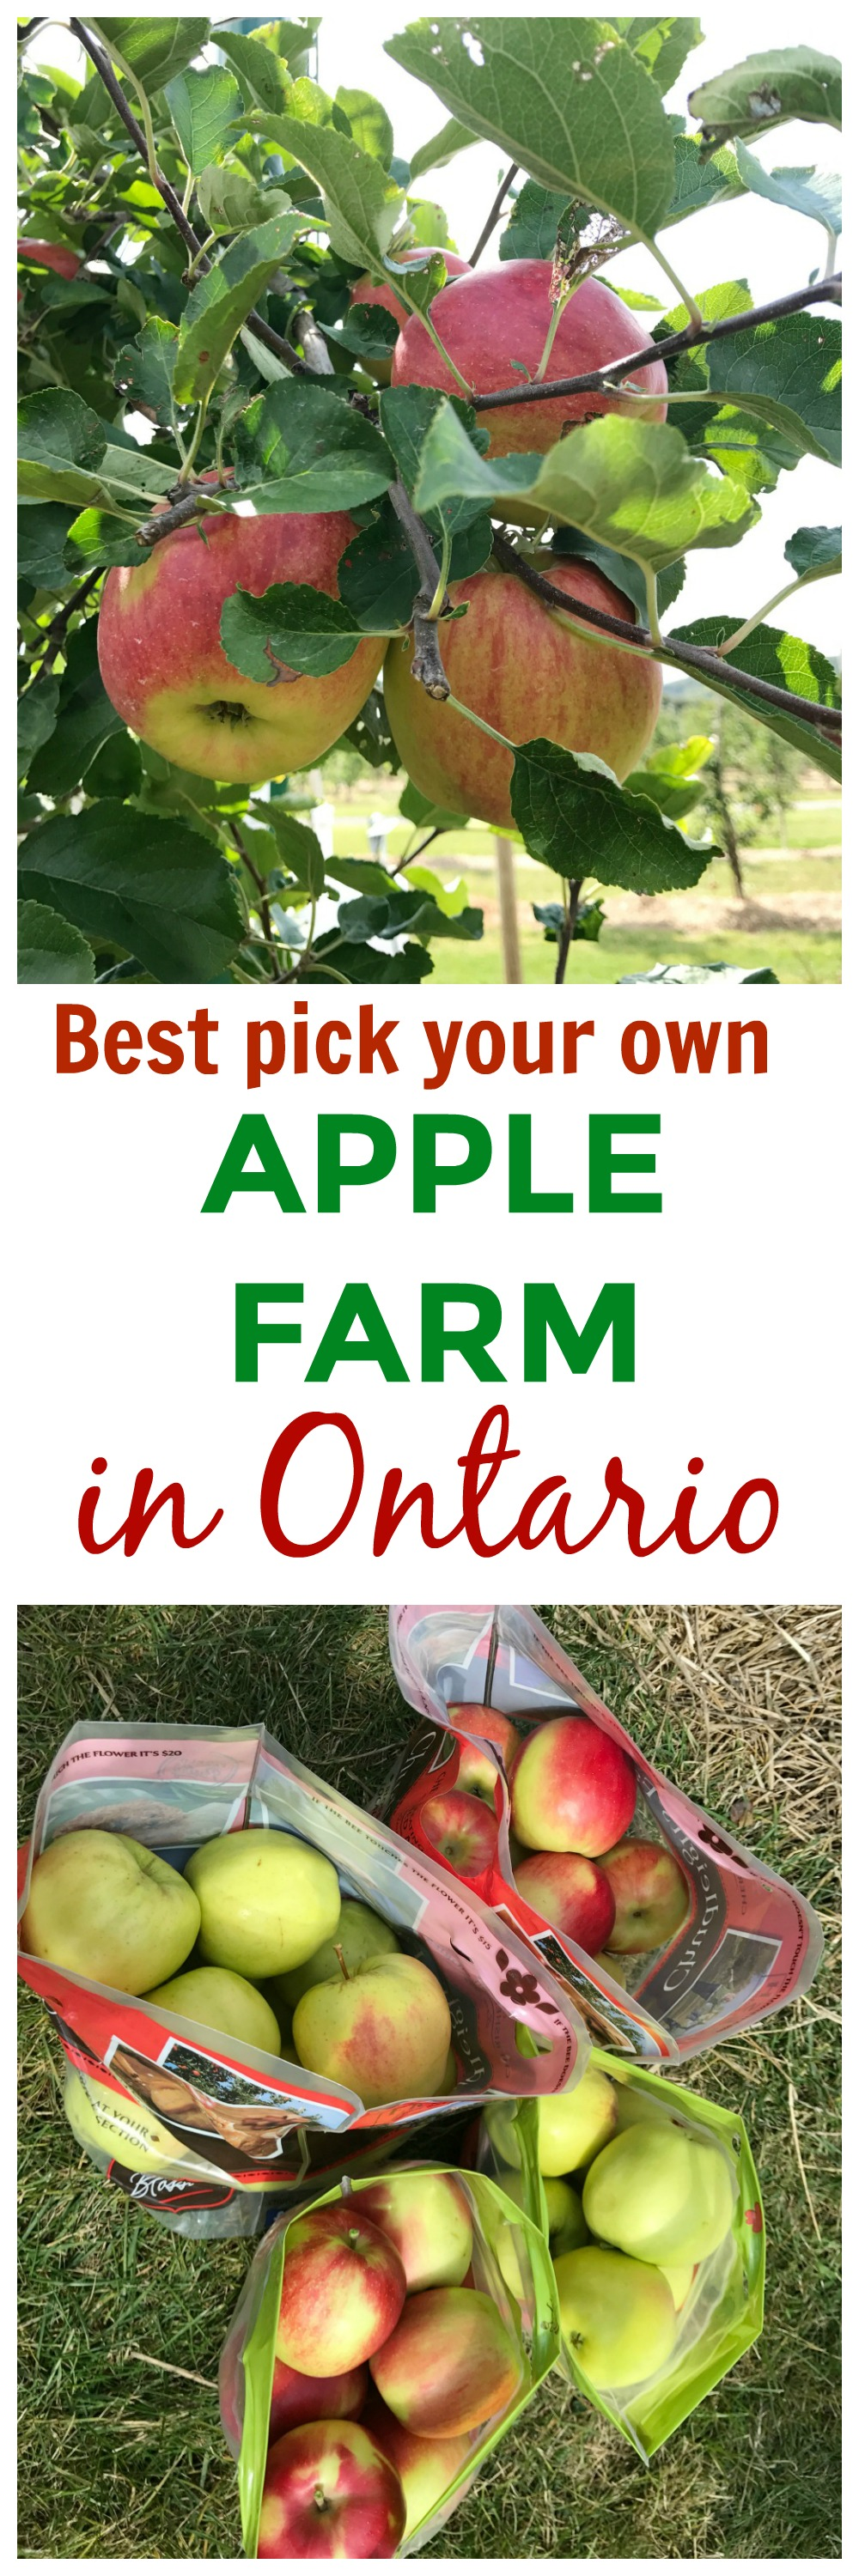 BEST APPLE FARM